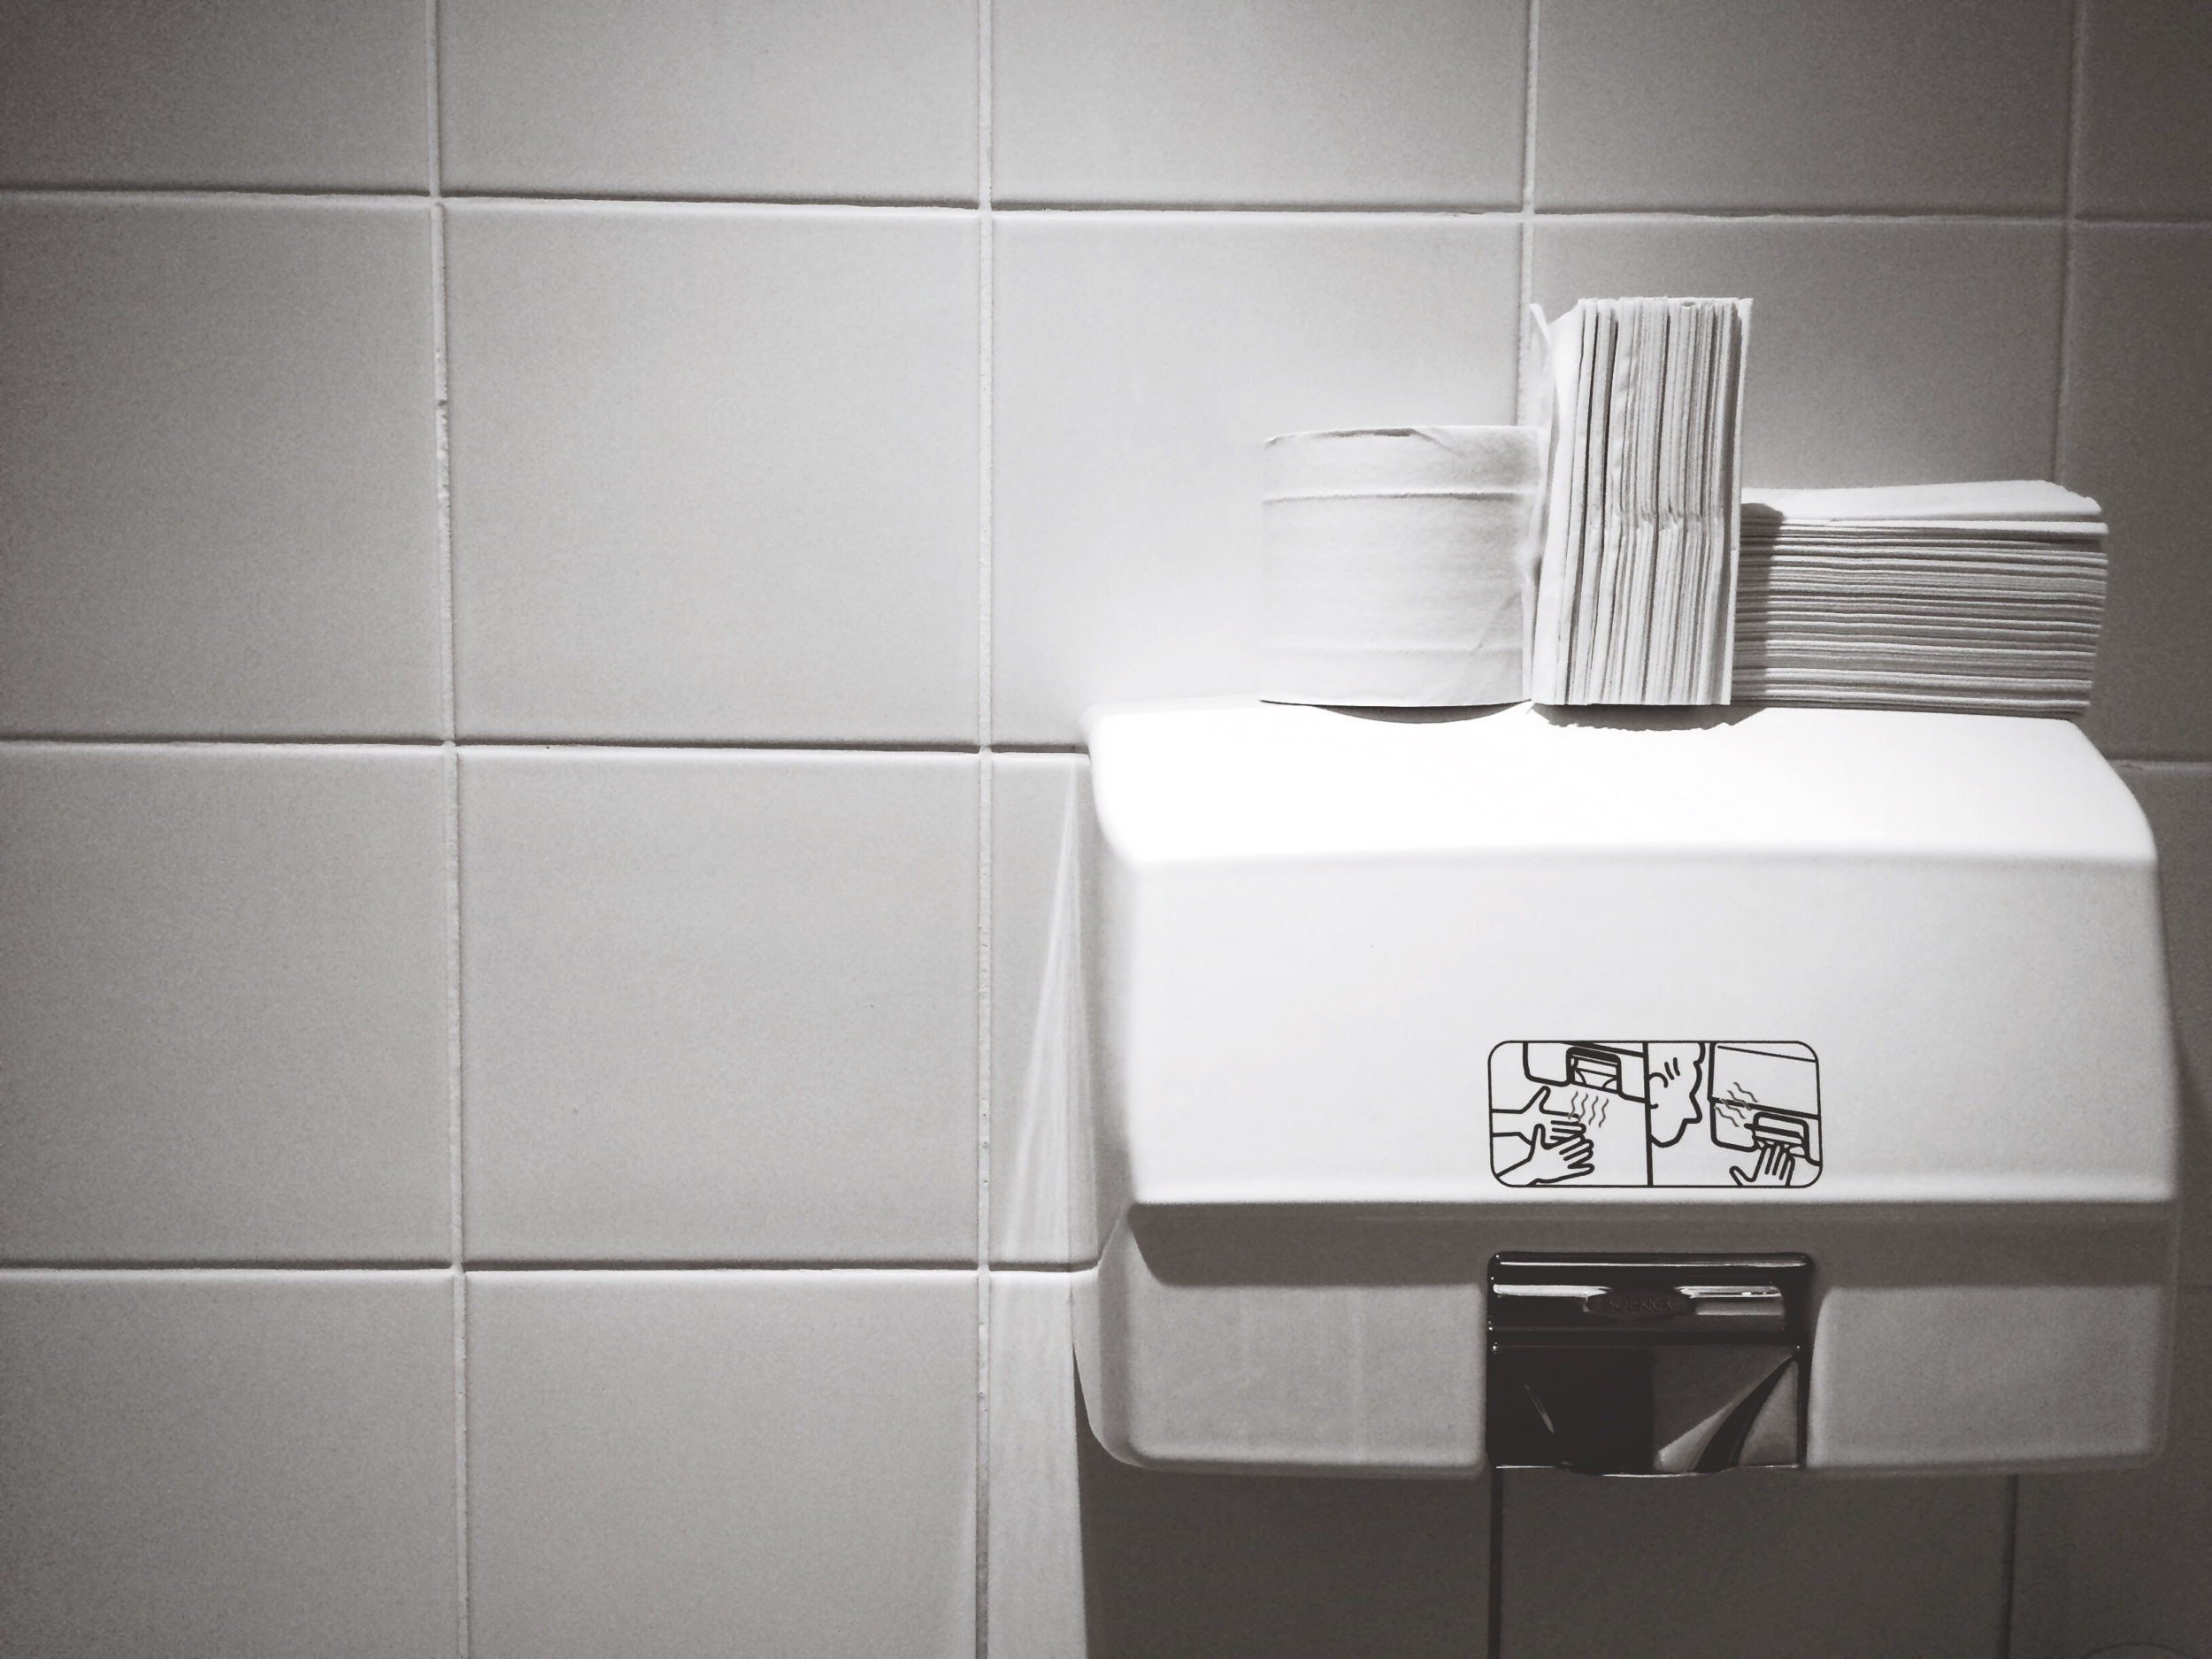 Hand Dryers In Public Bathrooms Spray Fecal Matter On Your Hands